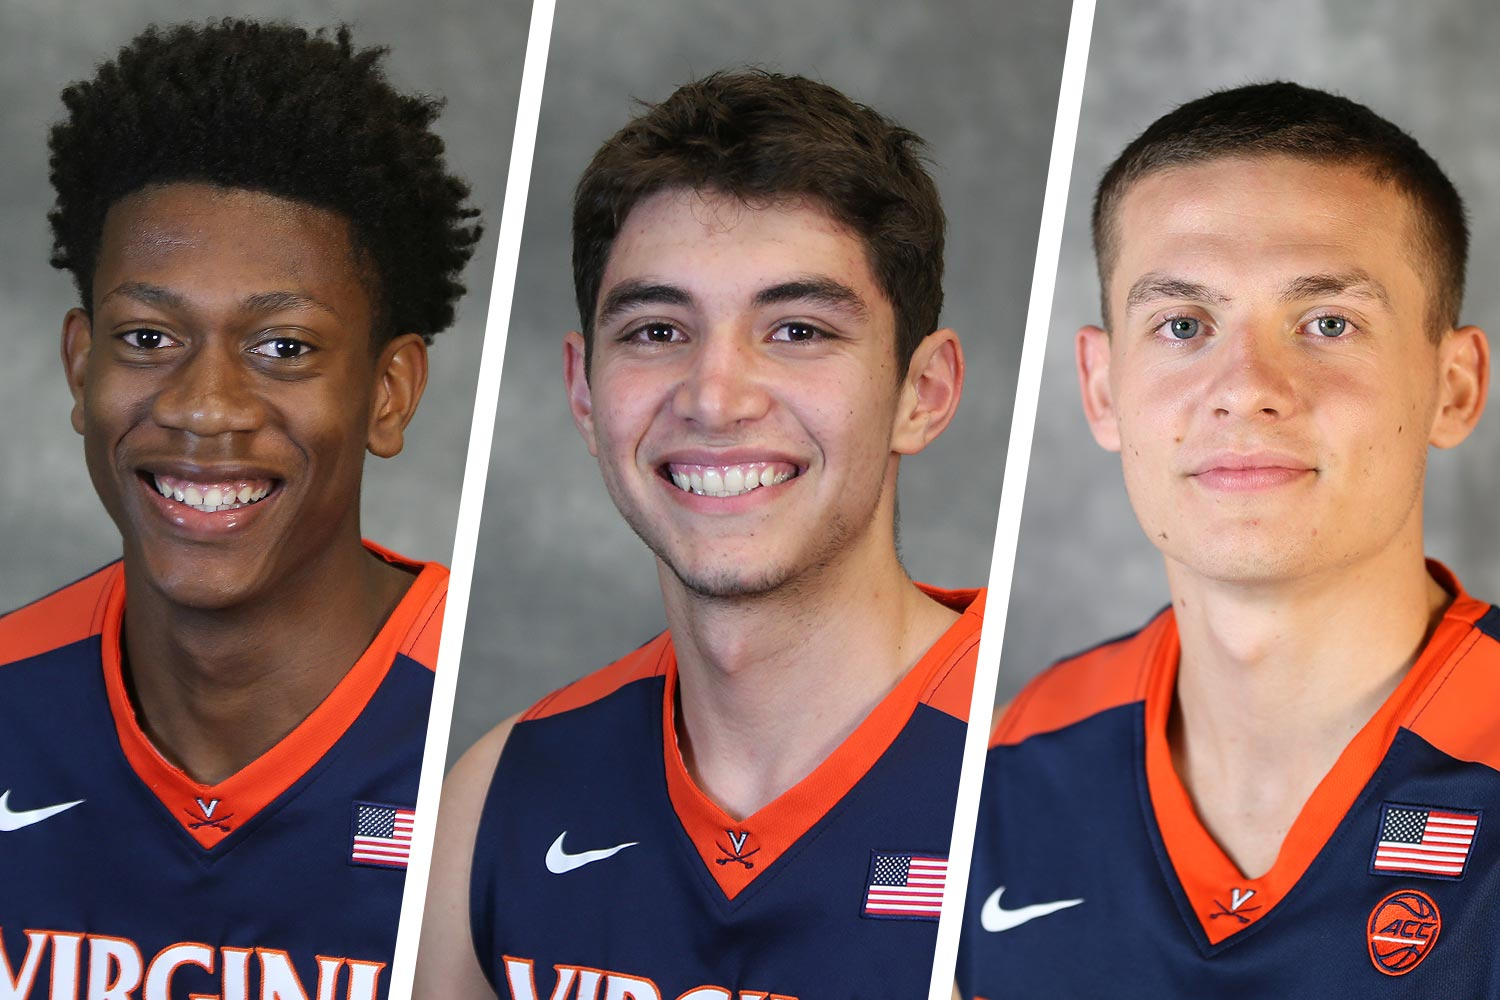 Over two months after leading UVA to a national championship, former Hoos De'Andre Hunter, Ty Jerome and Kyle Guy are taking the next step in their basketball journeys.